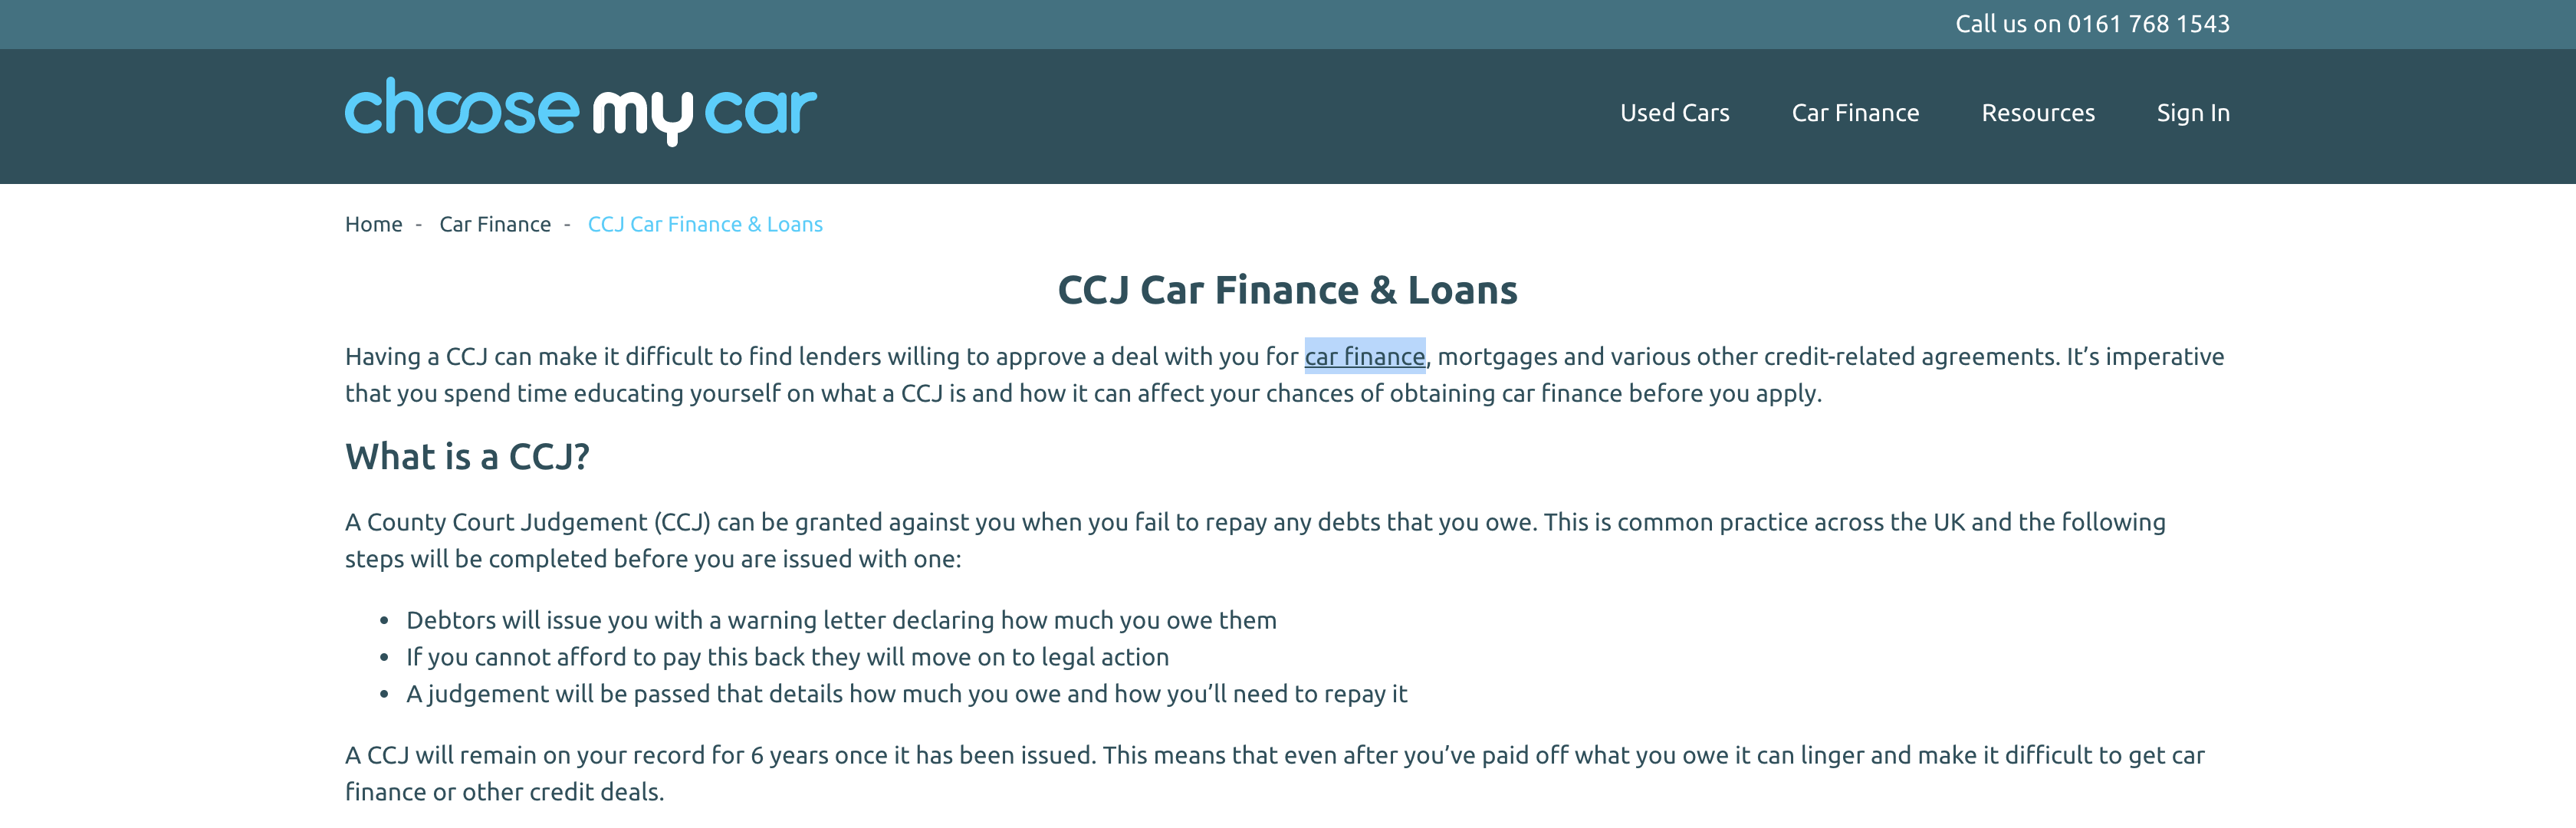 CCJ Car Finance Internal Links Second Example